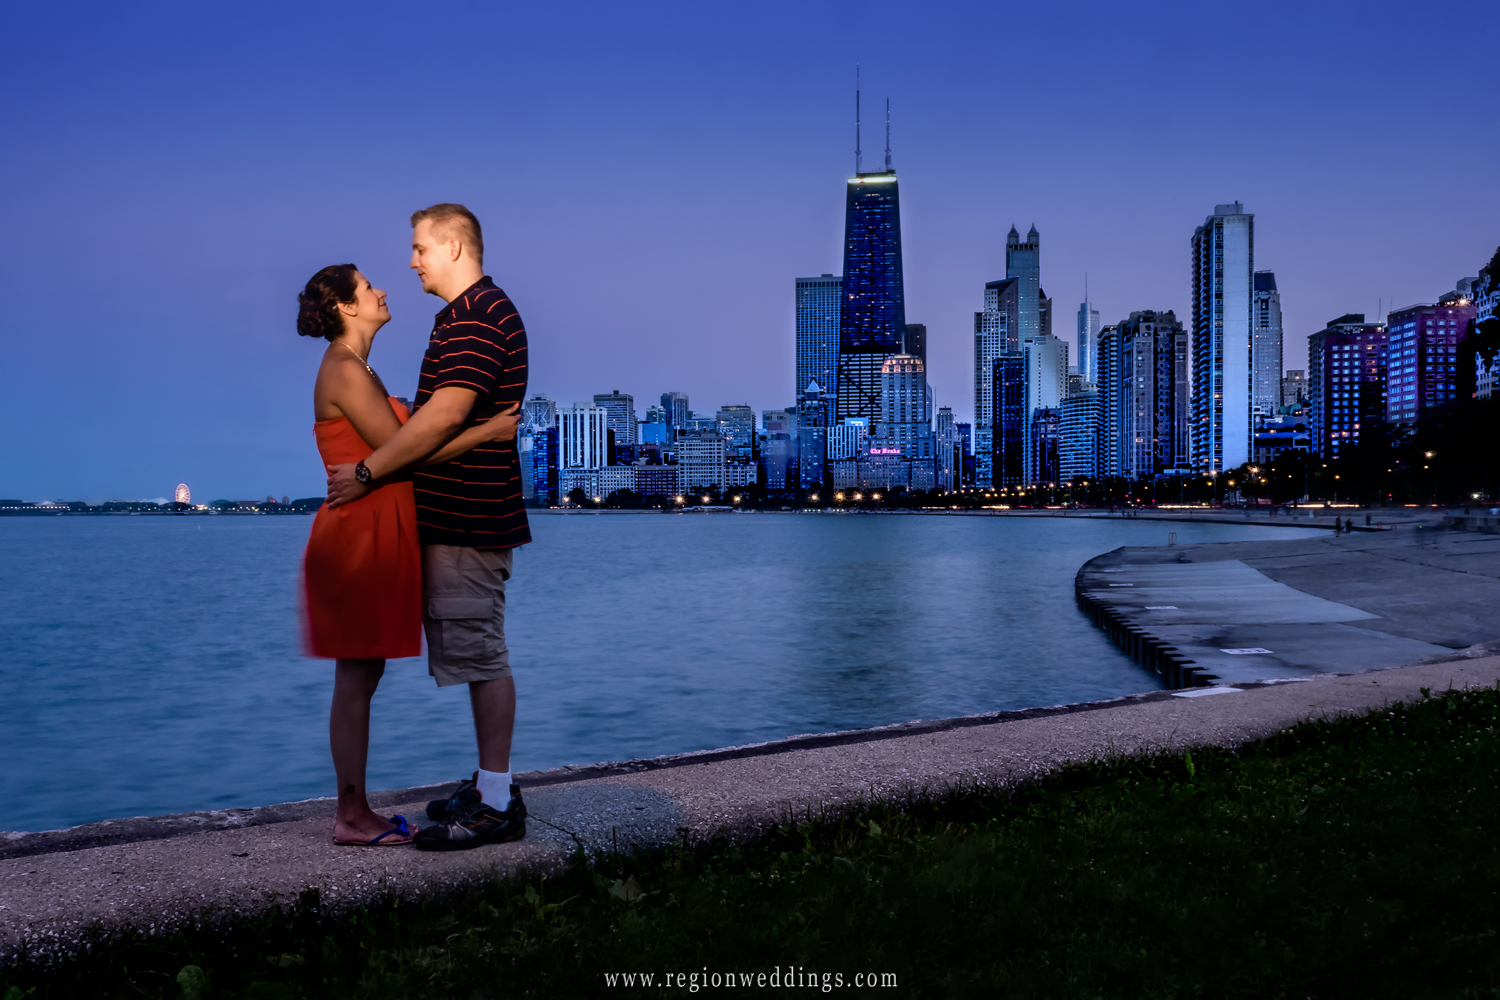 The city of Chicago at night as seen from the beach.